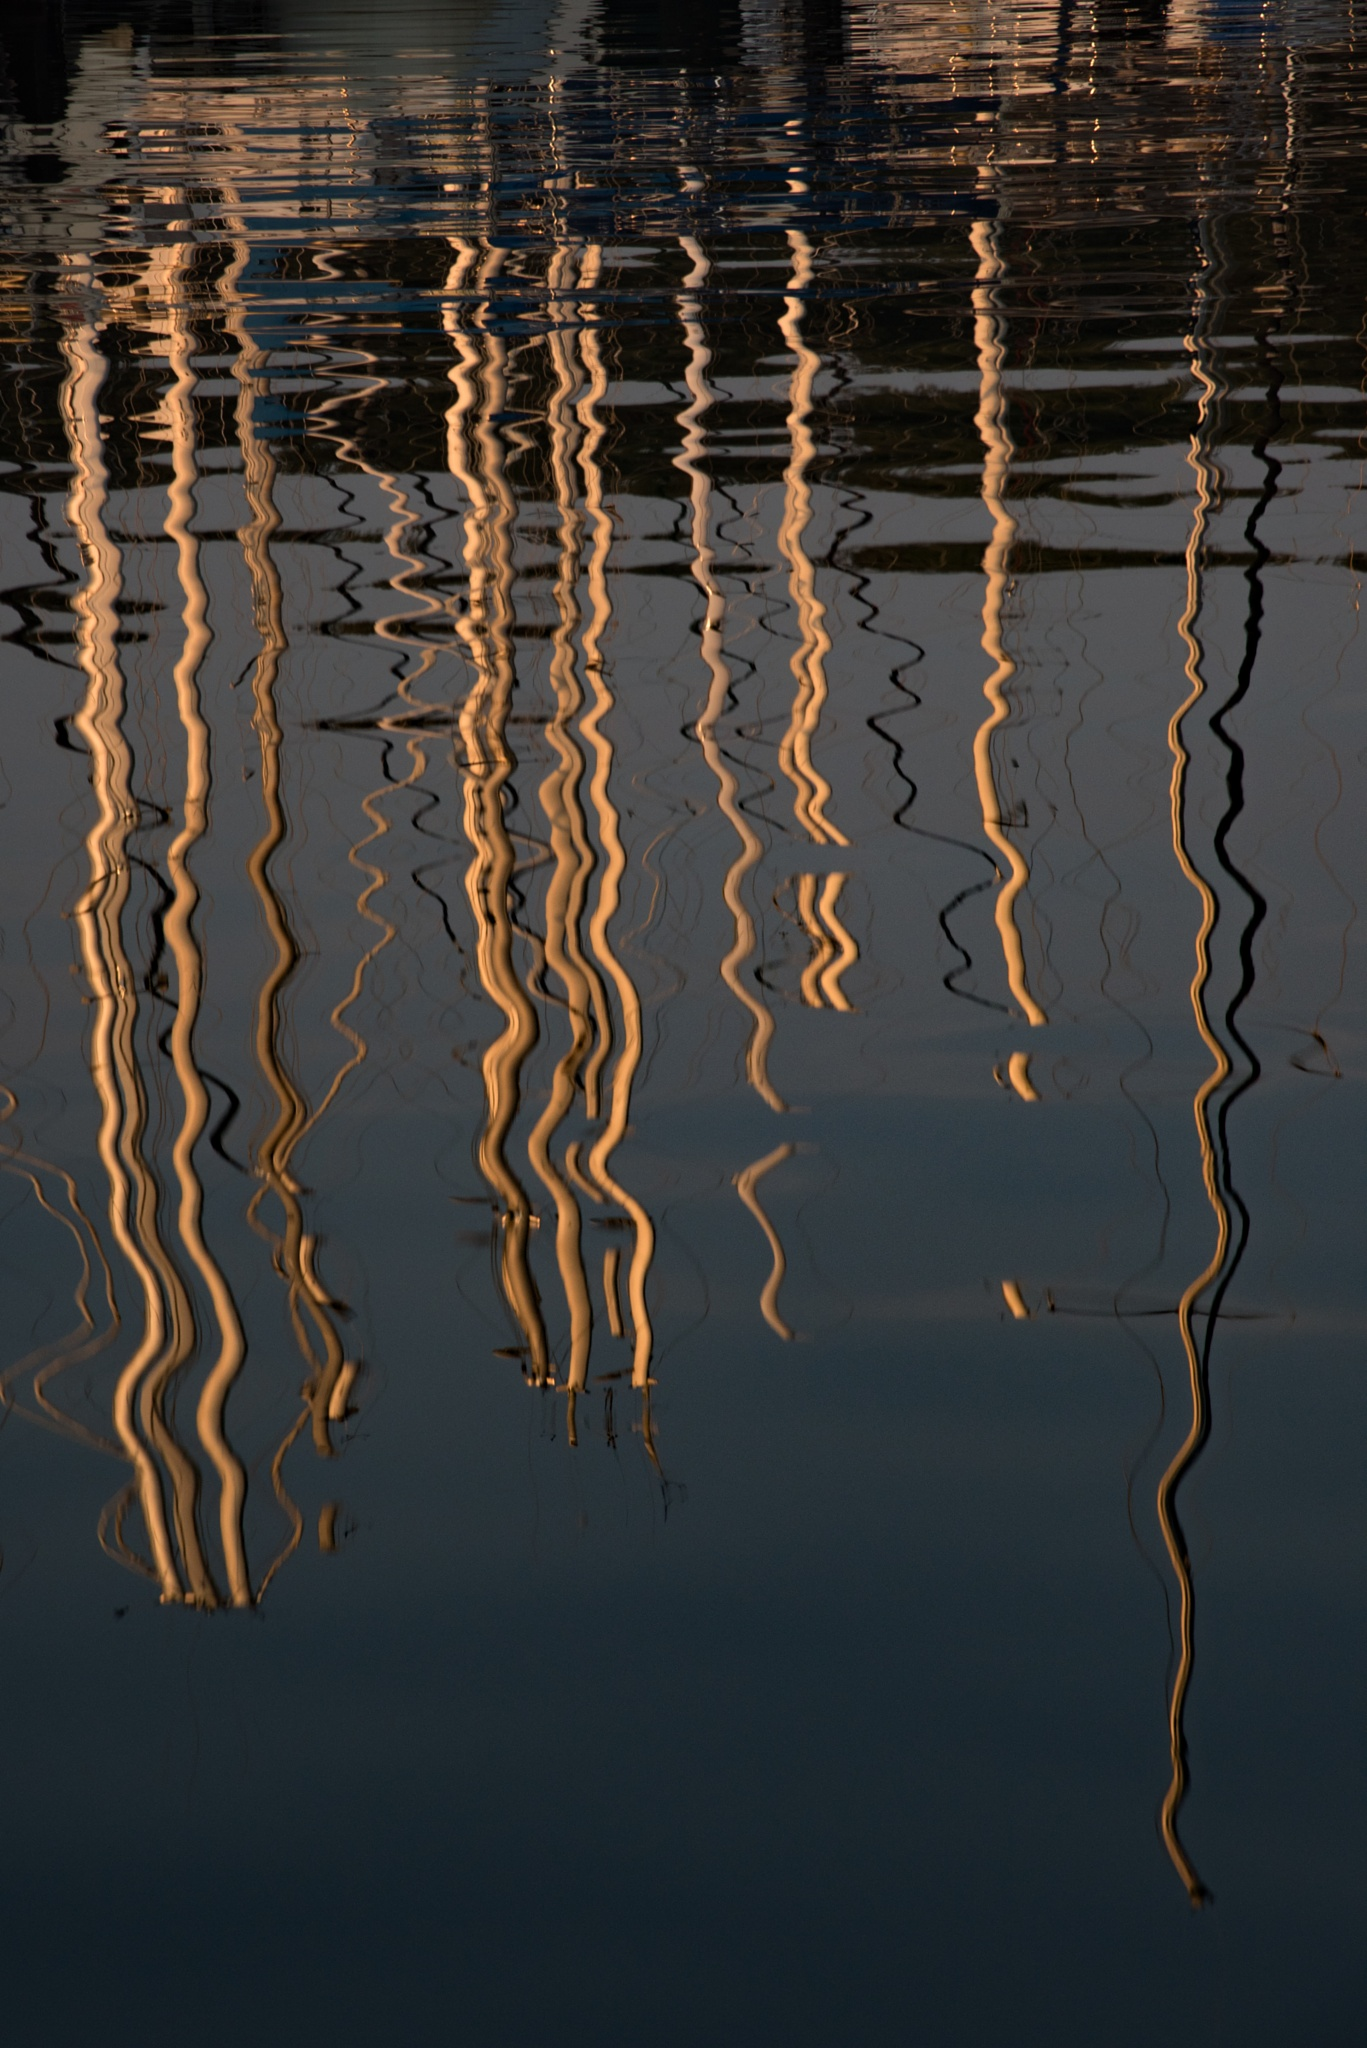 Reflections1 by Neels deConing